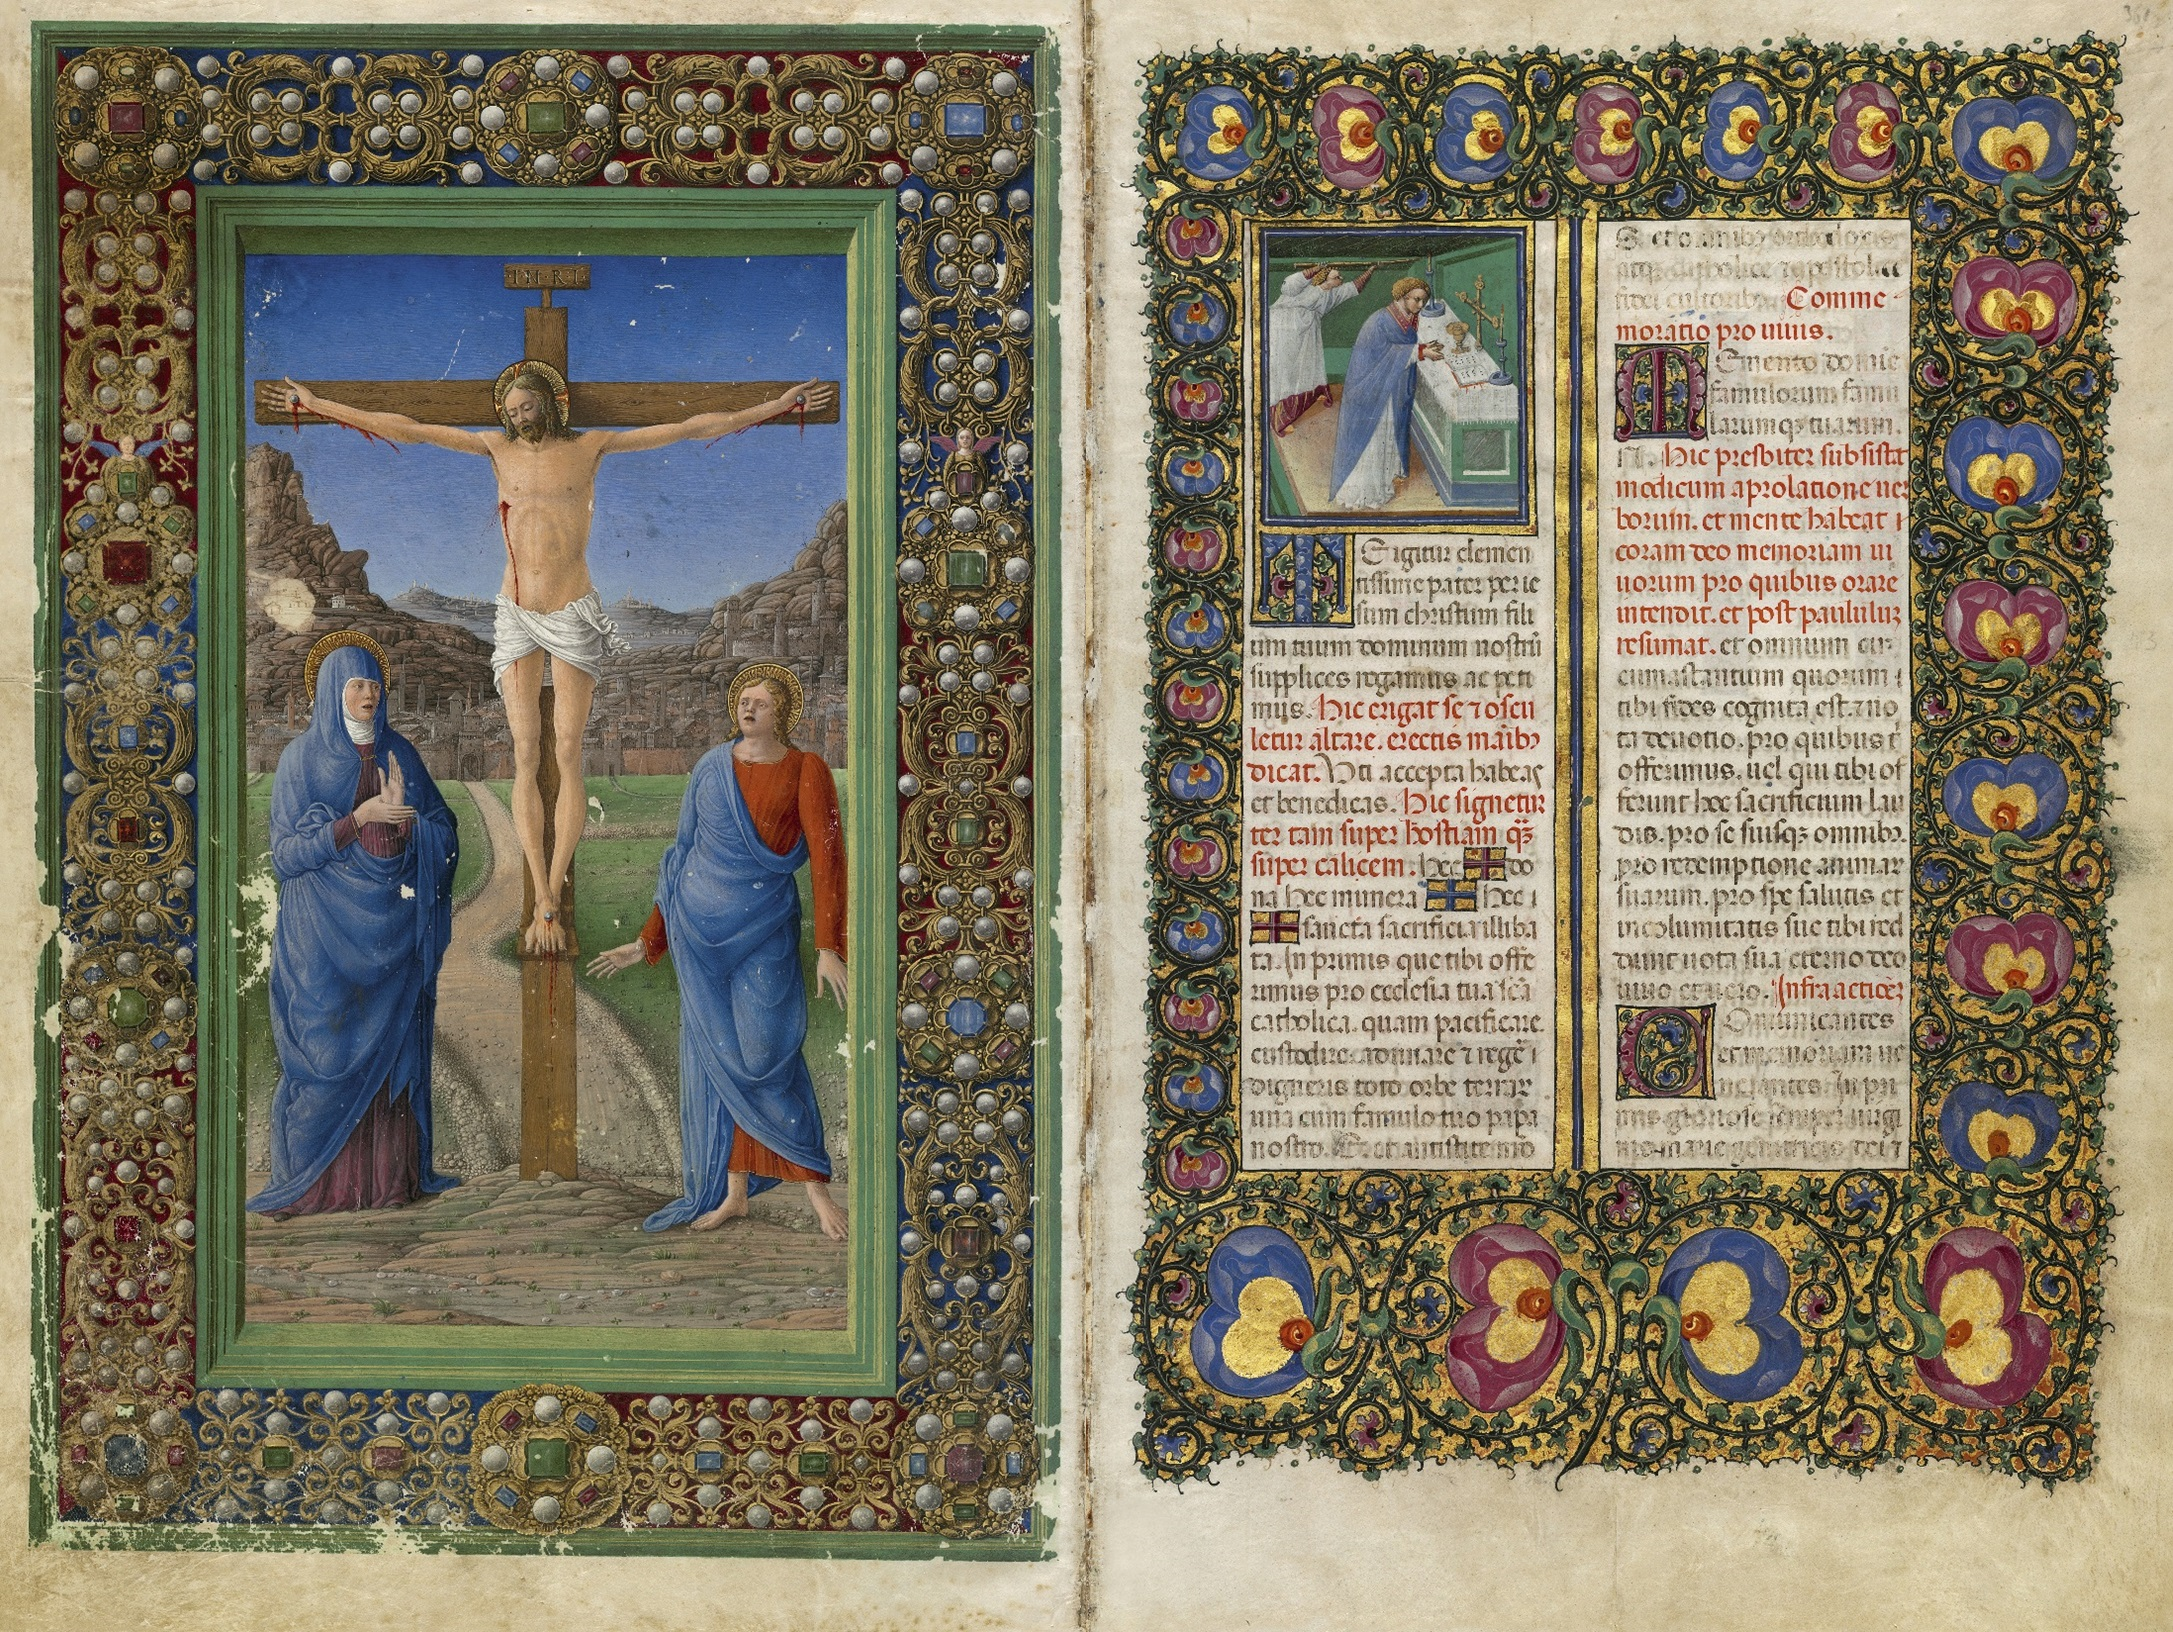 The Crucifixion; A Priest Celebrating Mass from Missal of Barbara of Brandenburg Gonzaga, Girolamo da Cremona (left) and Belbello da Pavia (right), 1442-65. Mantua, Archivio Storico Diocesano, Ms. s.s., fols. 182v-183 (Photo: Roberto Bini for the facsimile edition, © Il Bulino edizioni d'arte, Italy)